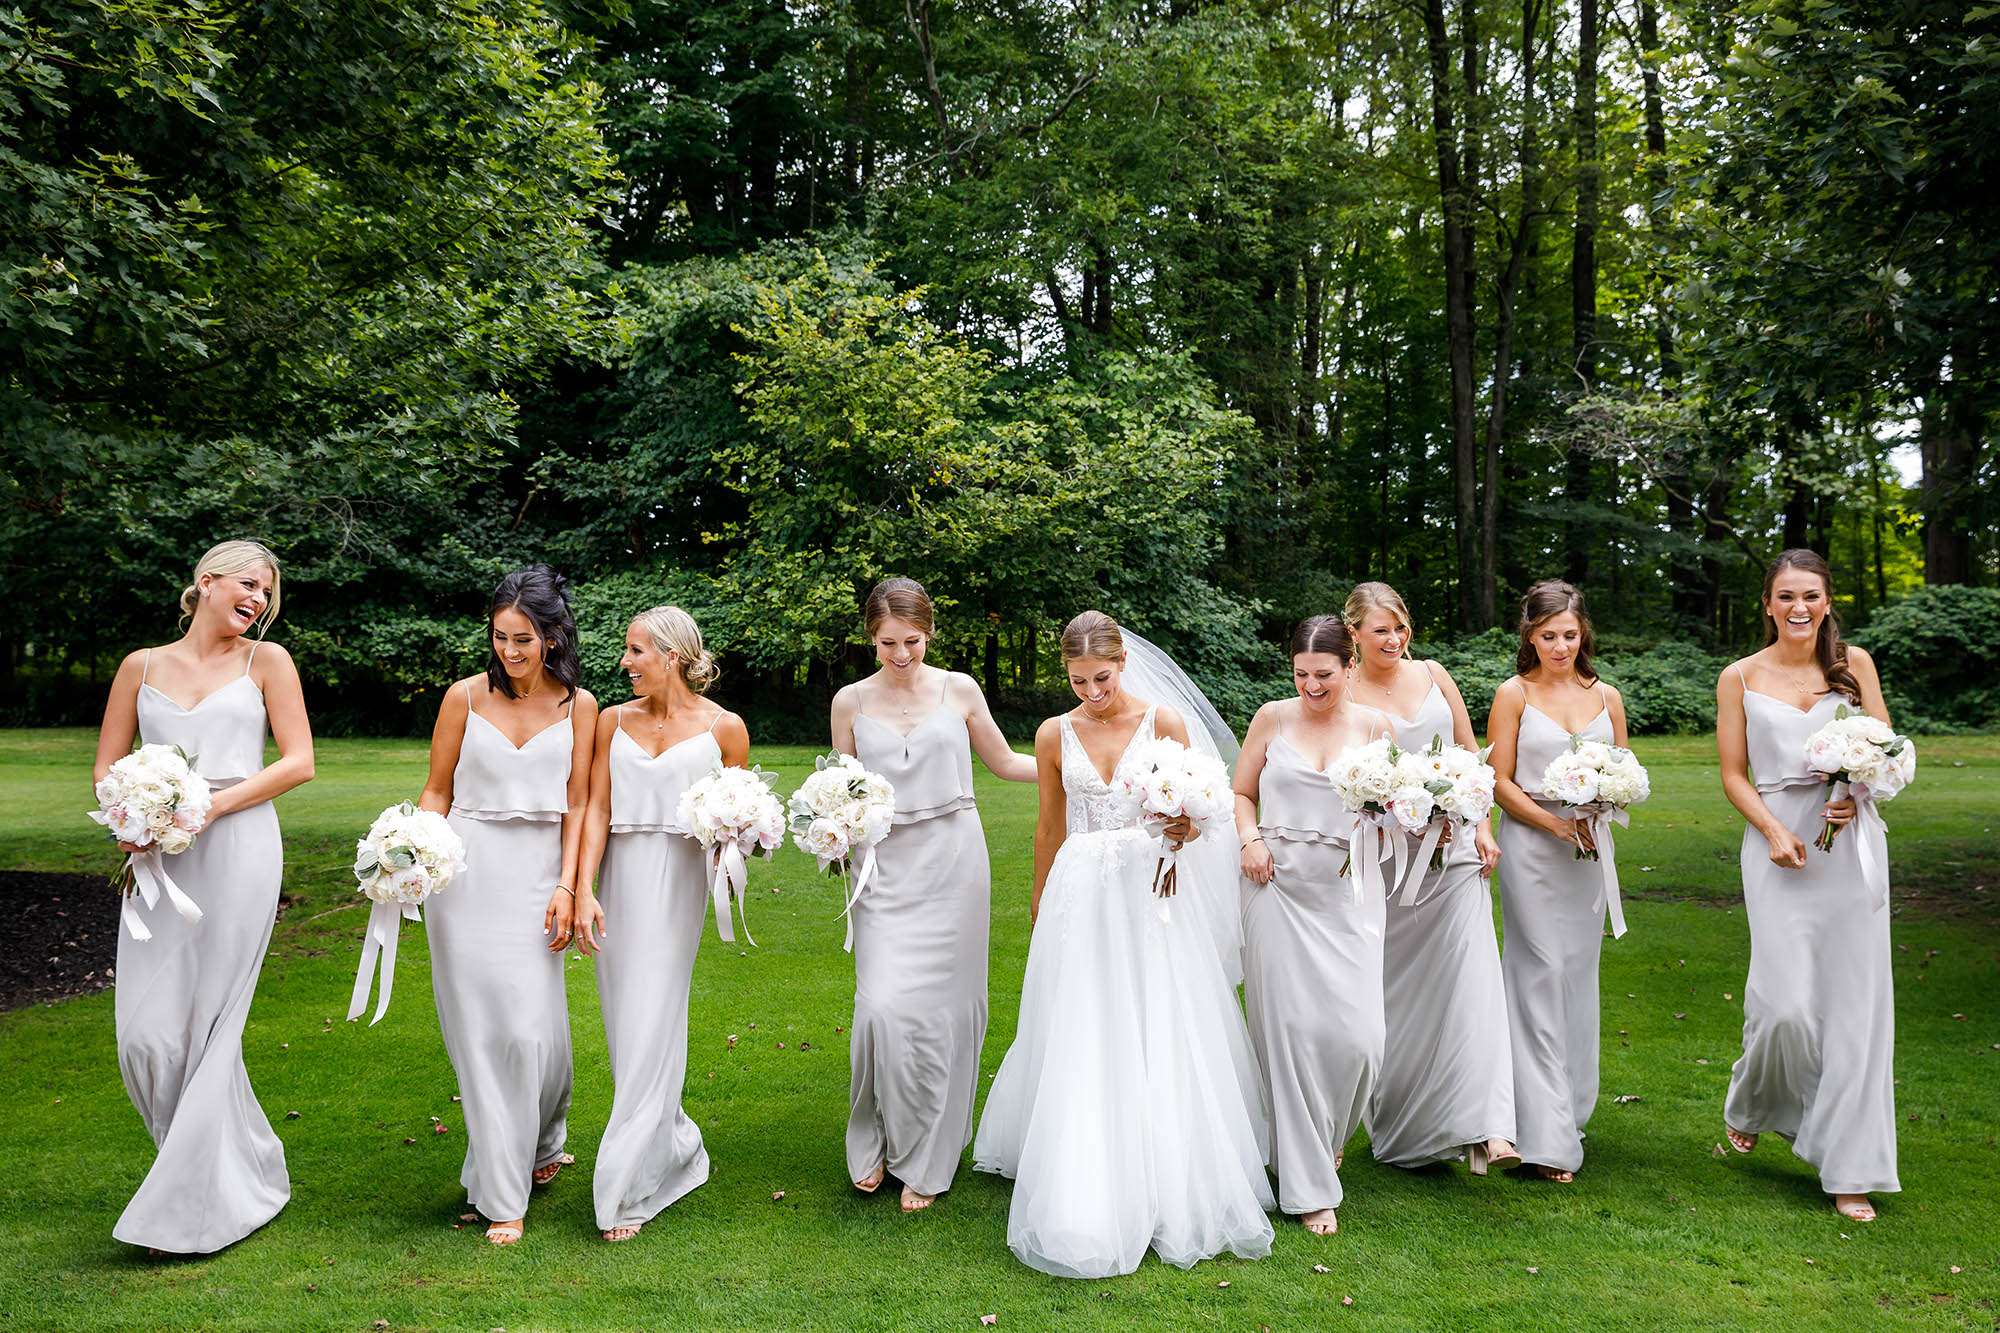 A bride walking the lush green grounds of The Country Club in Hunting Valley, Ohio with her bridesmaids as they carry their bouquets before the wedding ceremony.